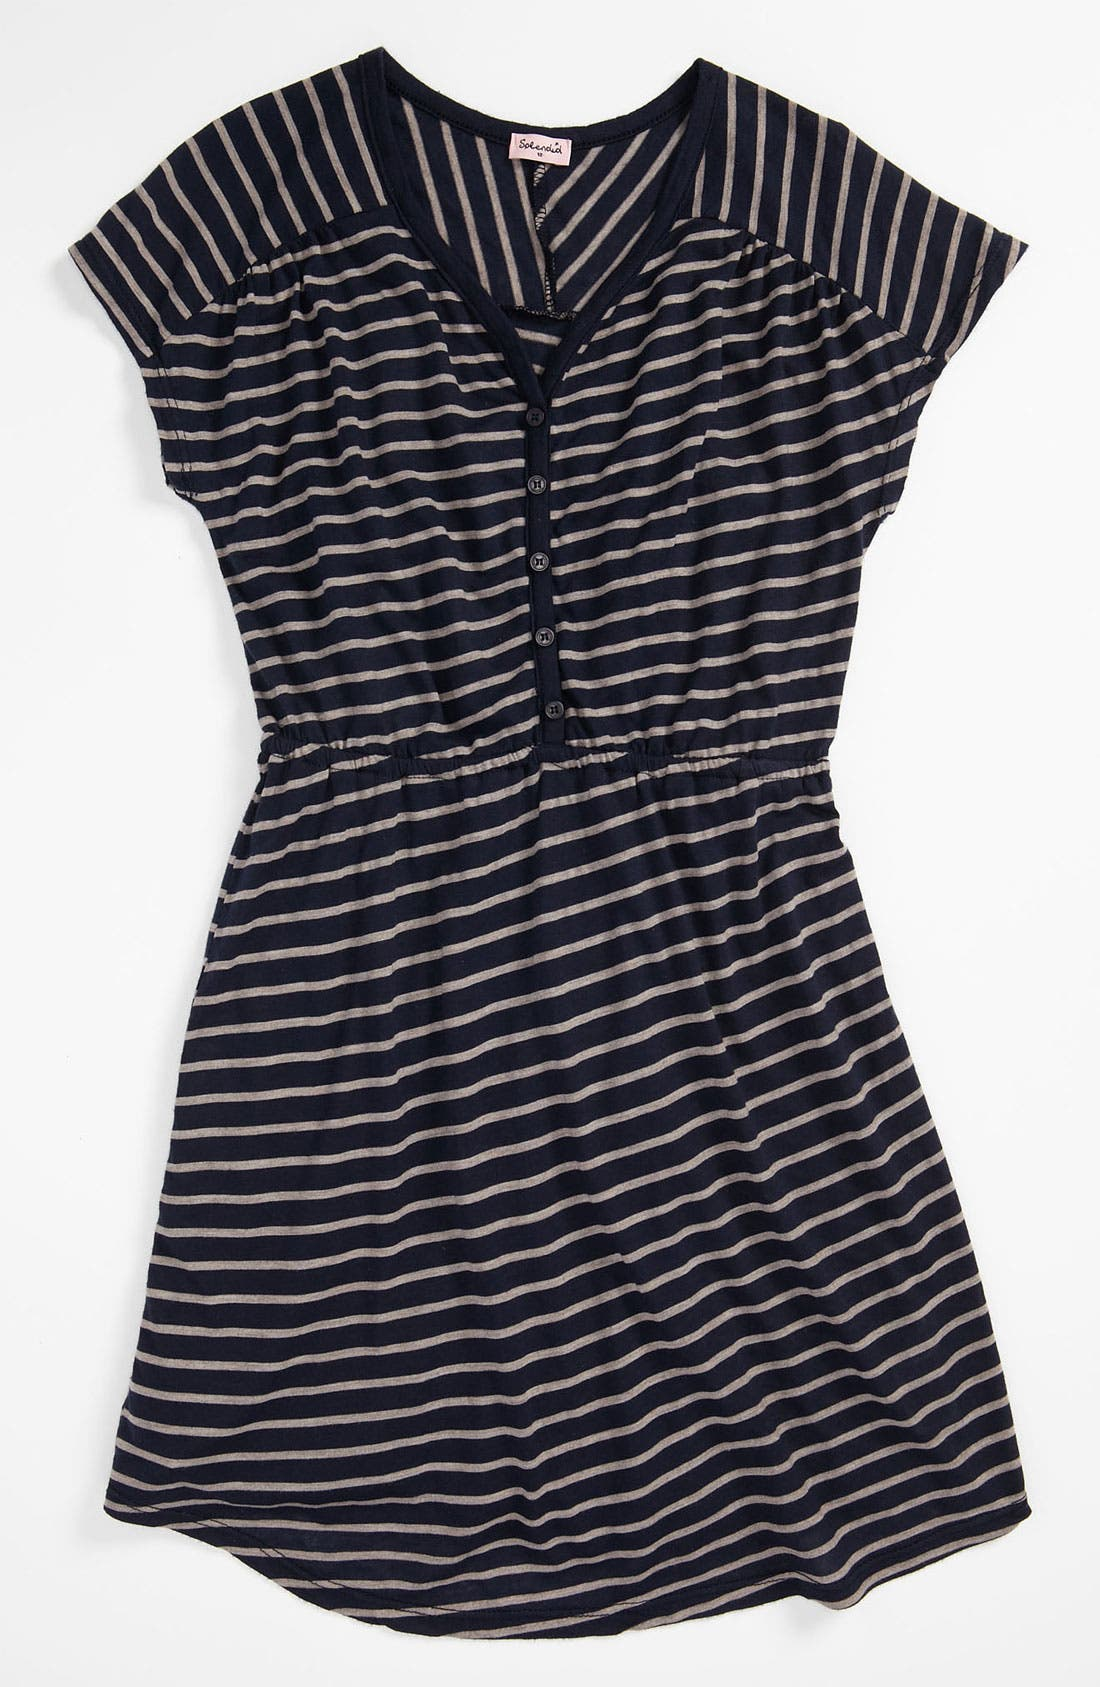 Main Image - Splendid 'Nutmeg' Stripe Dress (Big Girls)